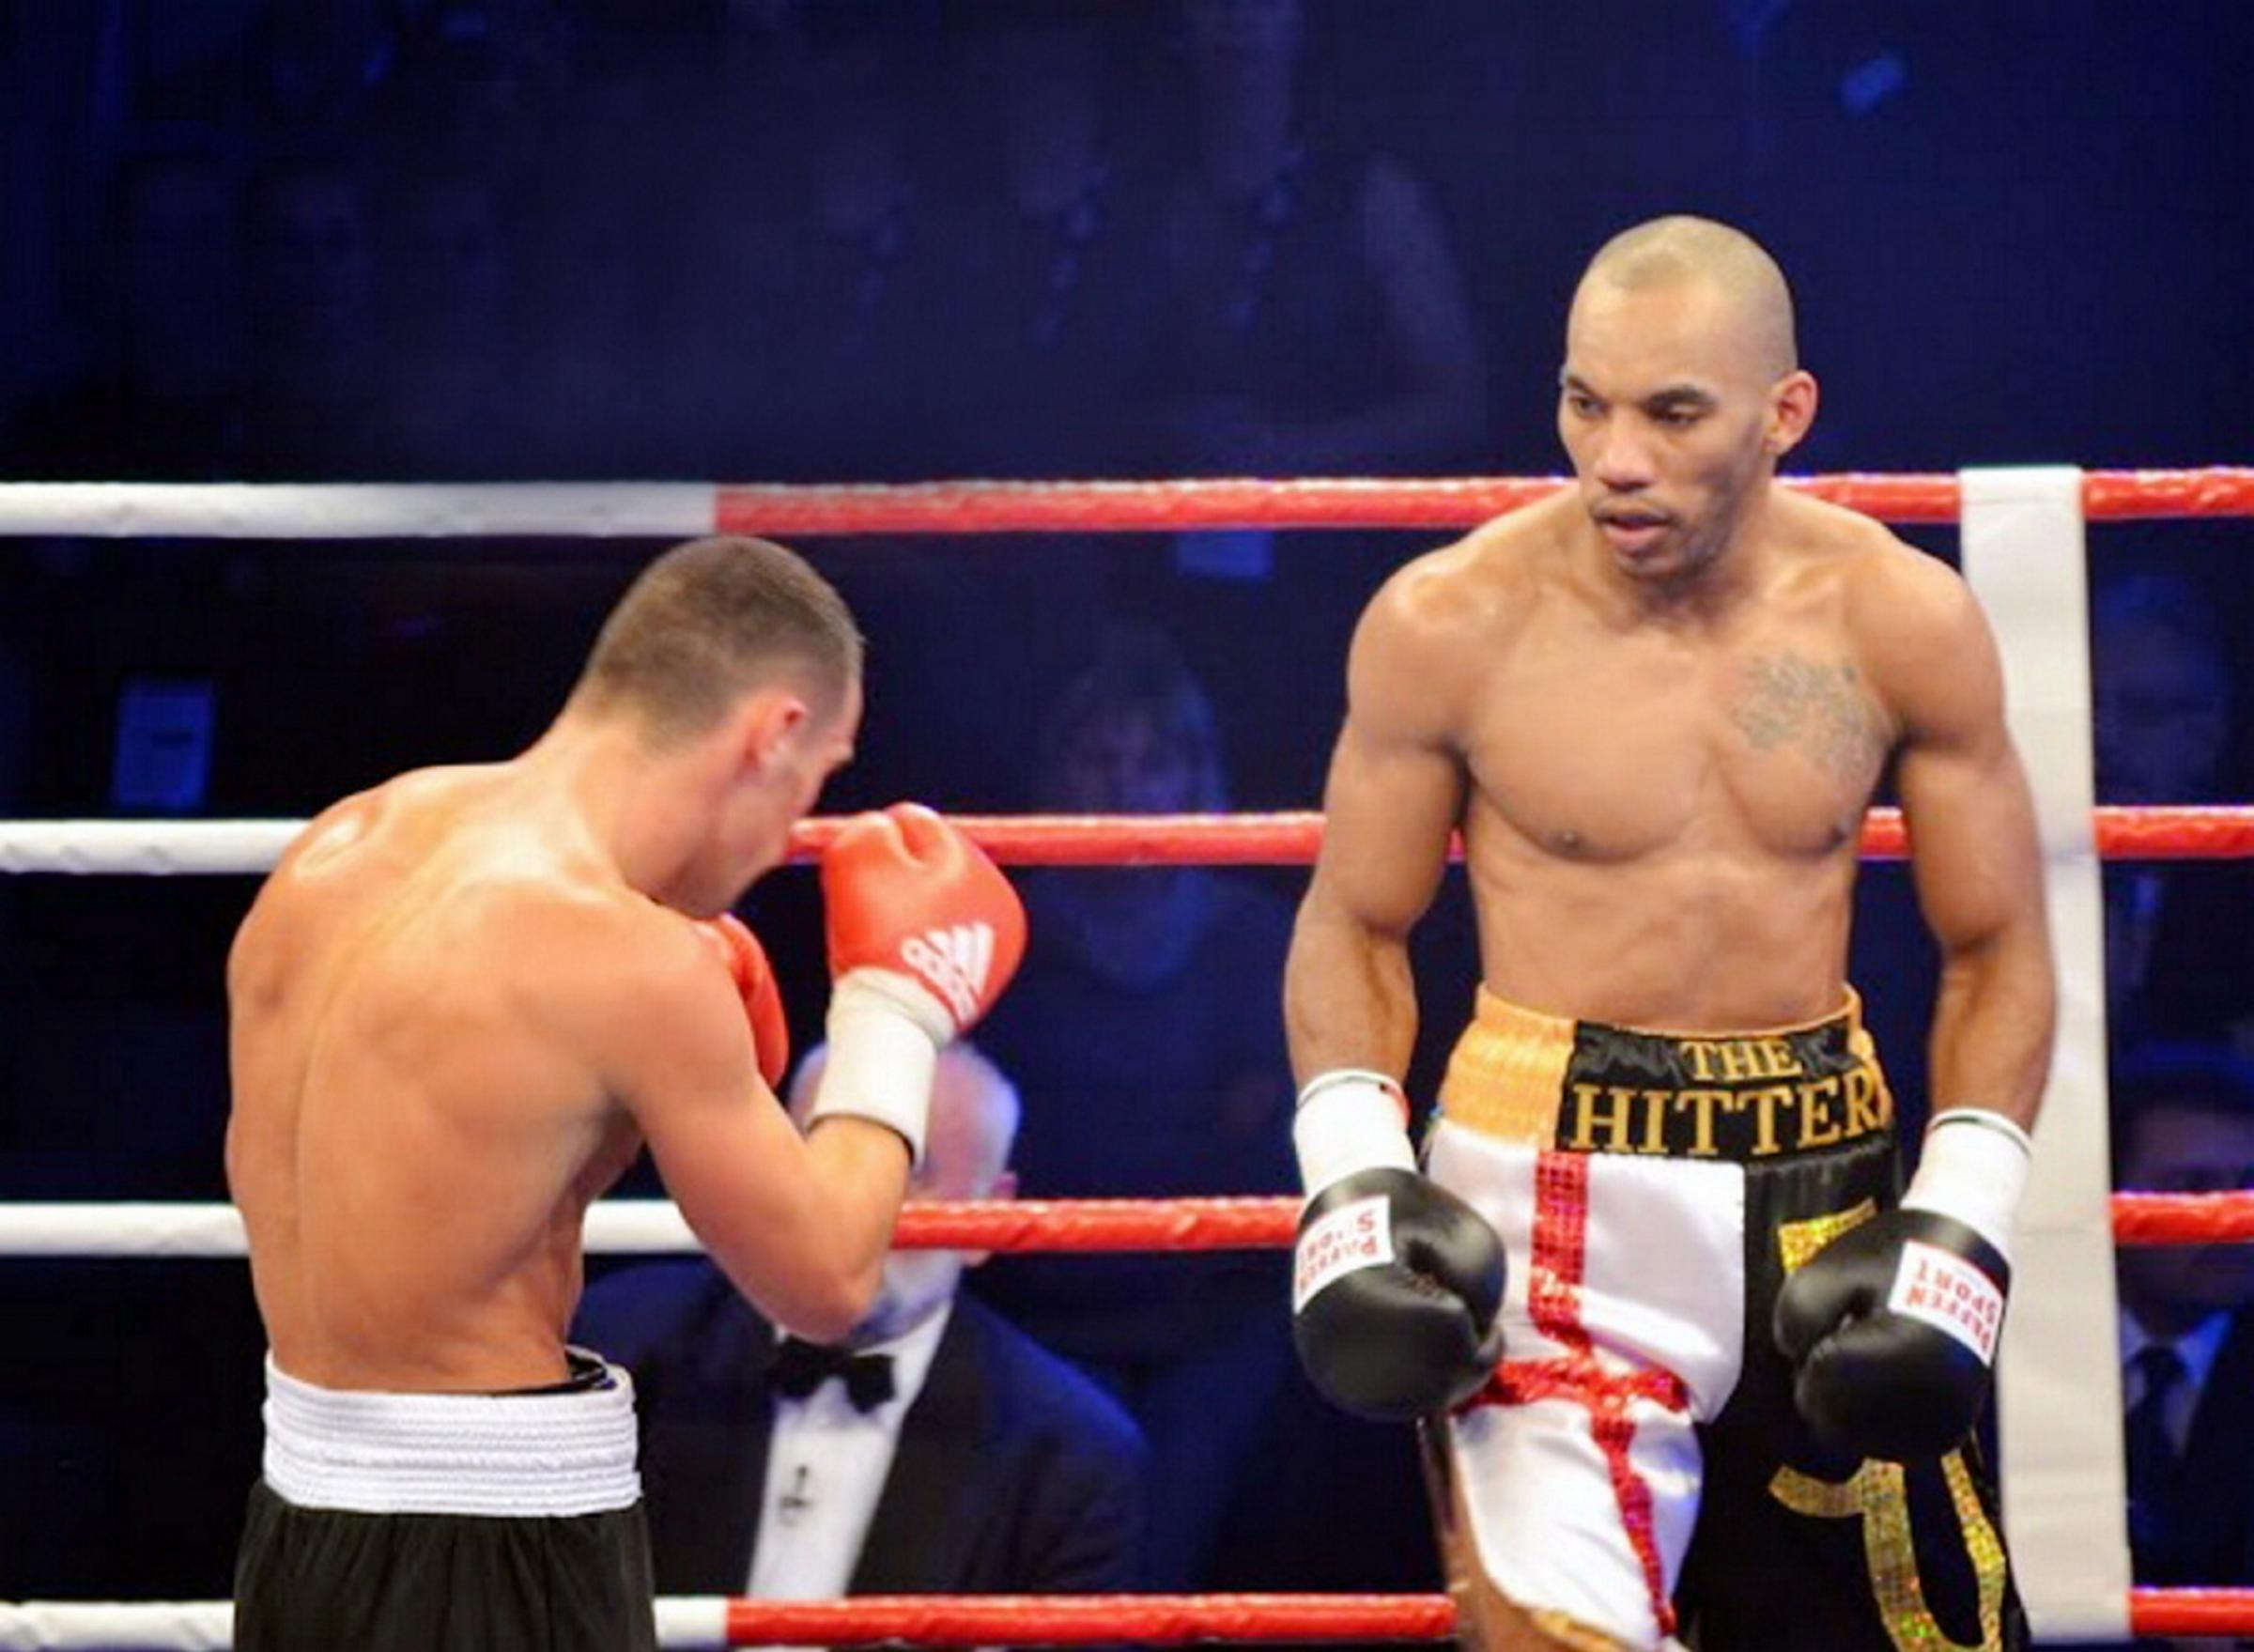 LANDMARK: Junior Witter in his 50th pro fight against Timo Schwarzkopf